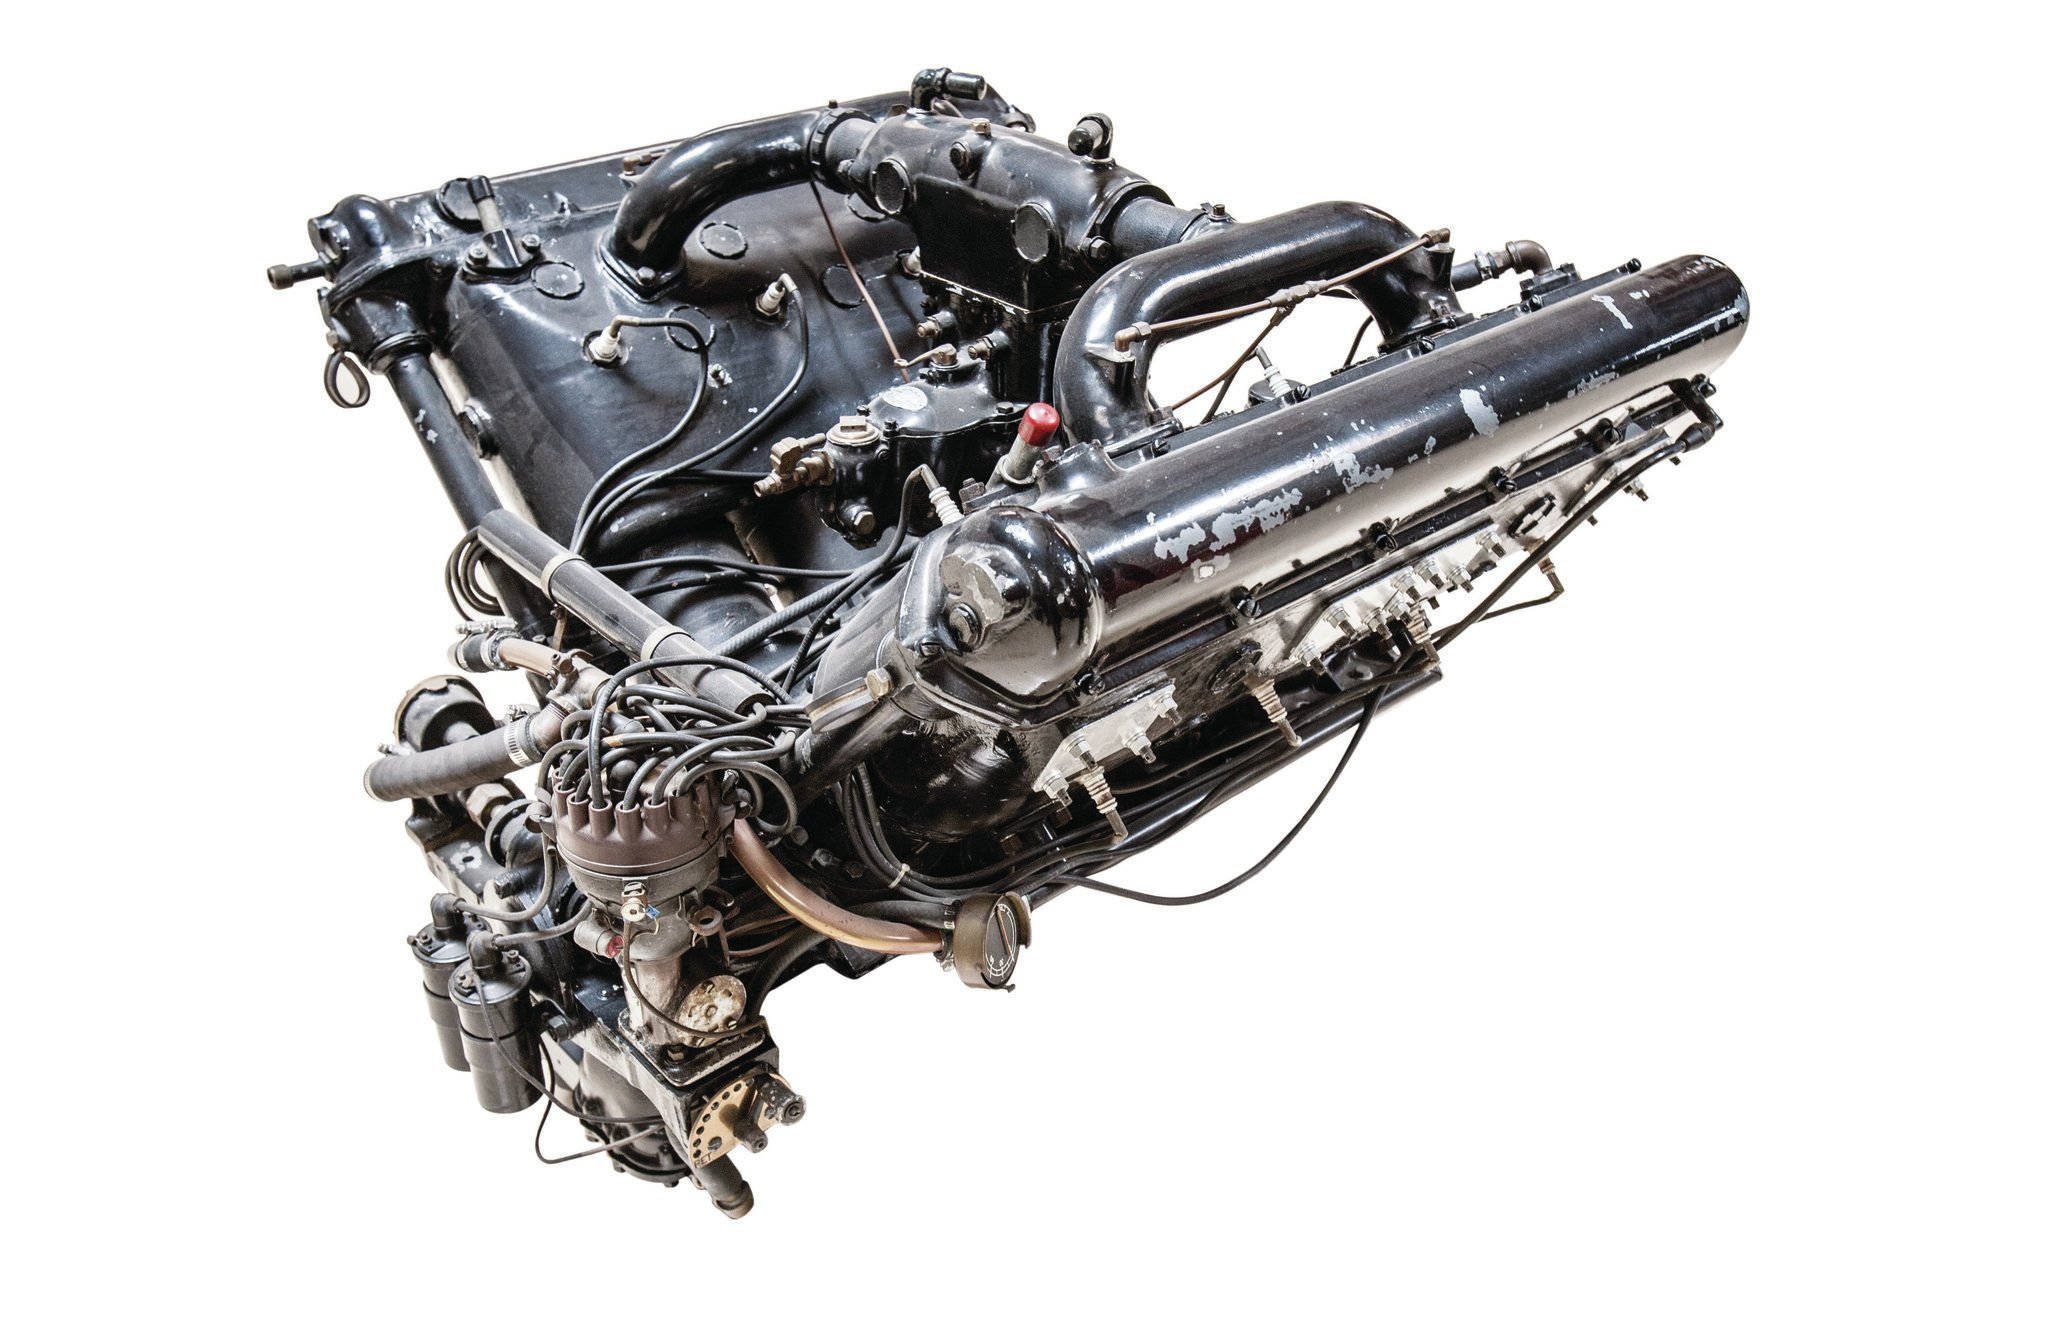 Here's what the Hispano-Suiza engine looked like in full V8 form. This one is in Jay Leno's collection.